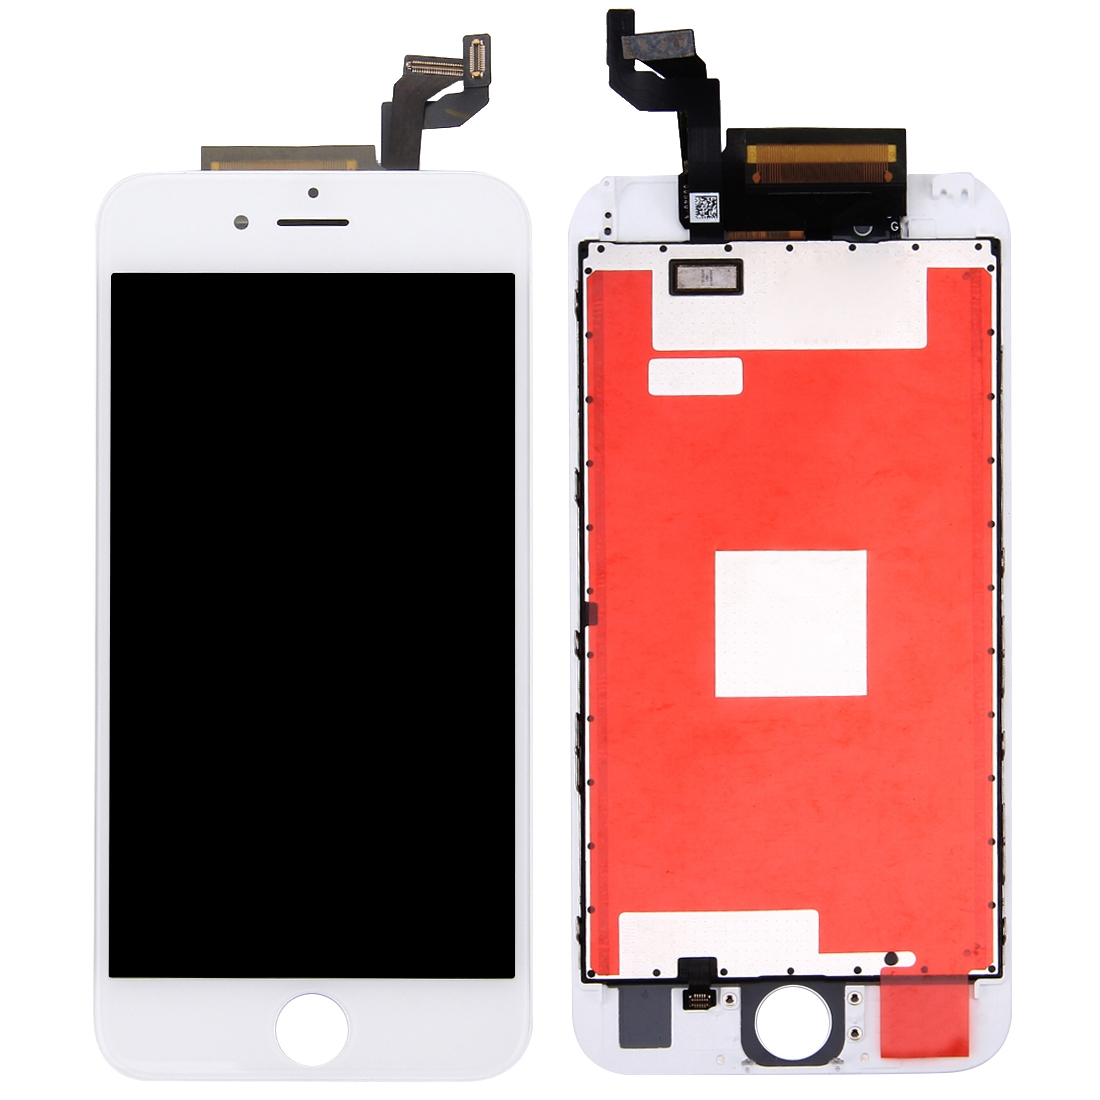 reputable site e8a64 72bd7 Display LCD complete device touch panel for Apple iPhone 6 S plus 5.5 inch  white